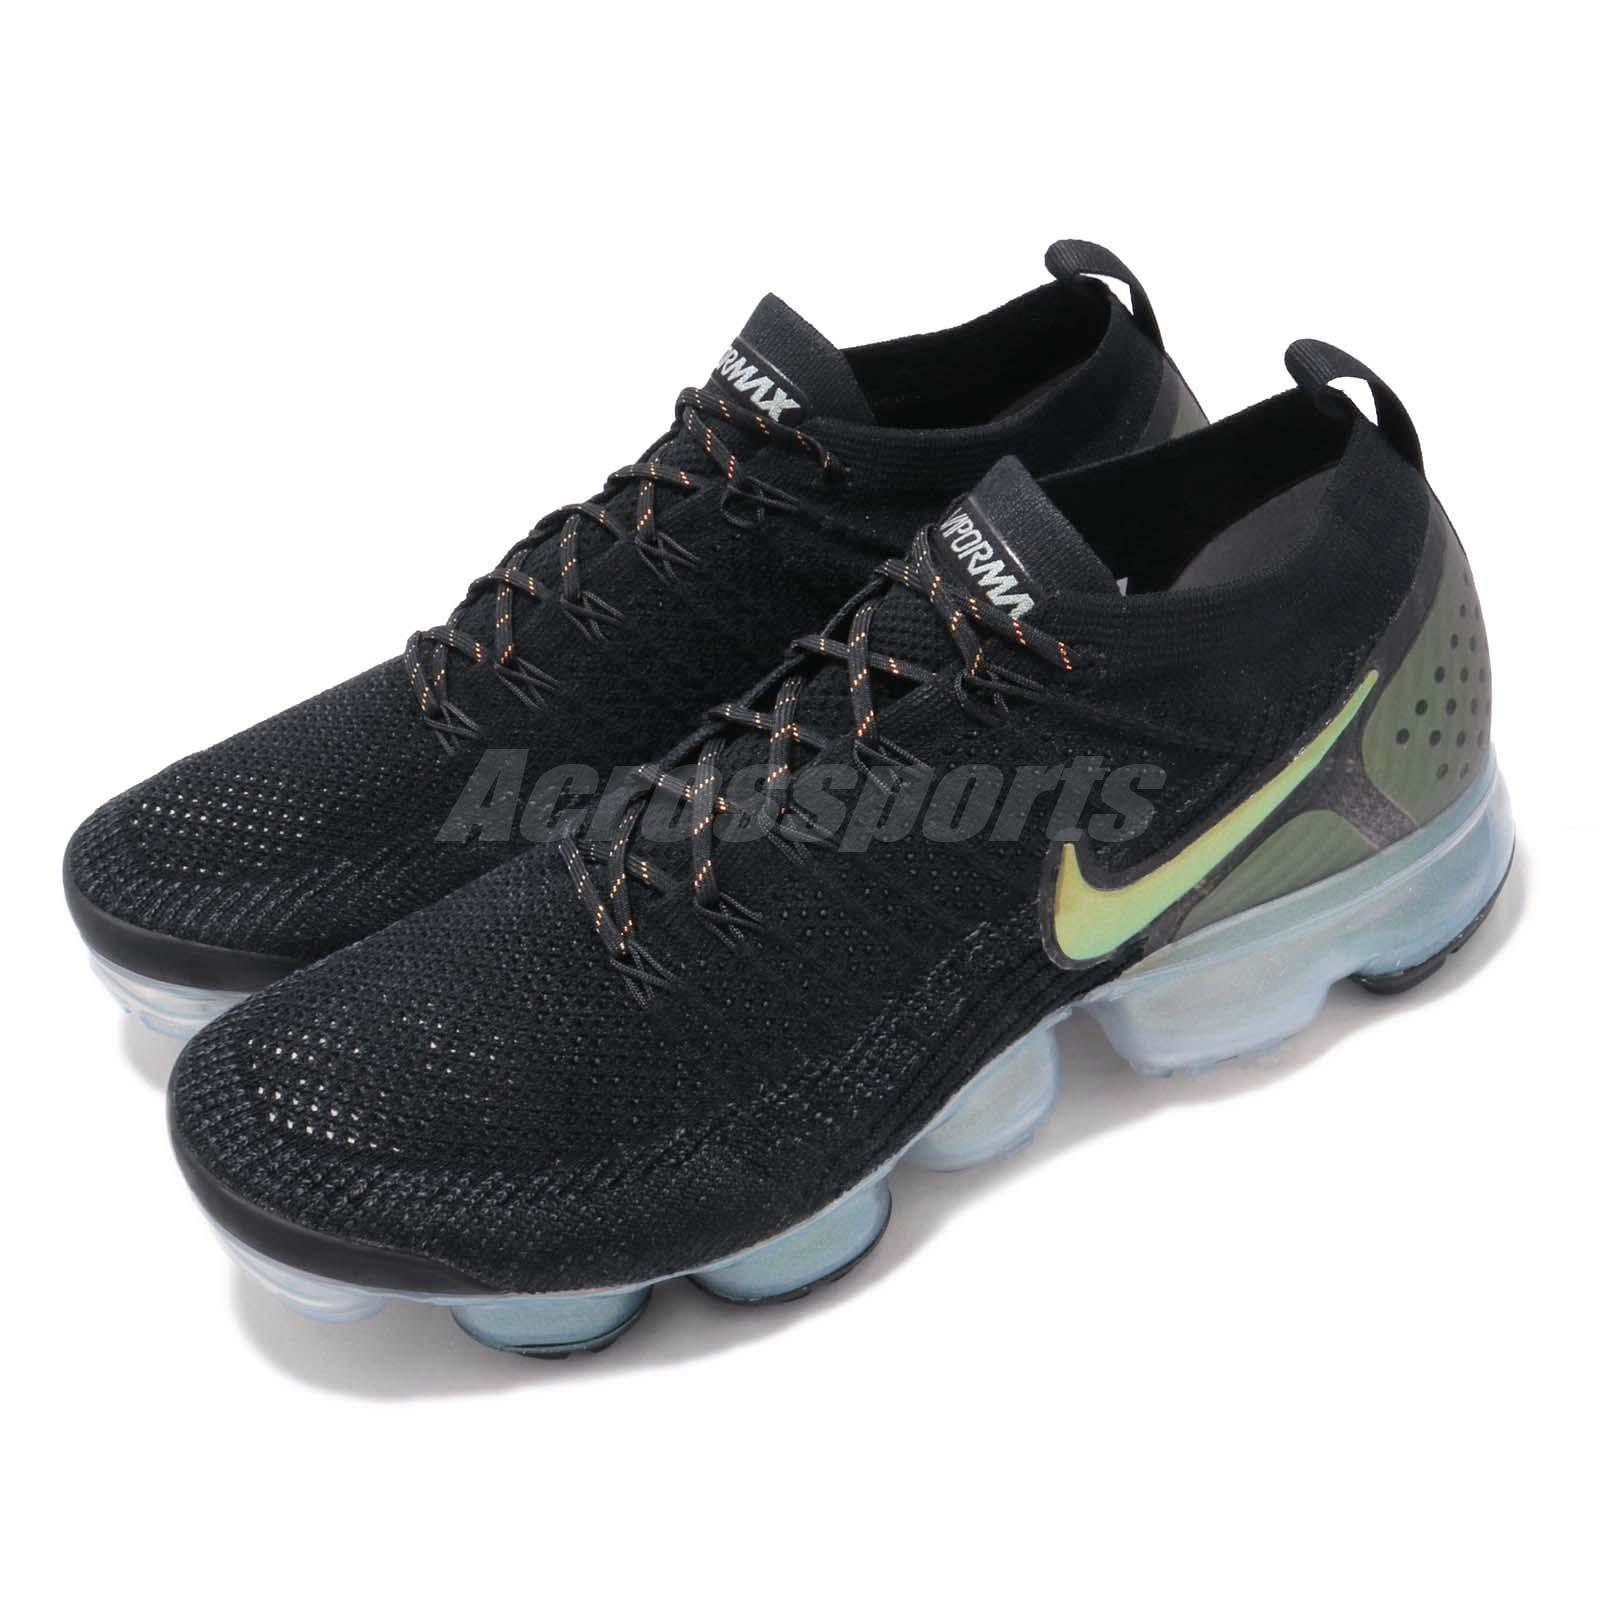 half off 14137 bd4f9 Details about Nike Air Vapormax Flyknit 2 Black Gold Men Running Shoes  Sneakers 942842-015